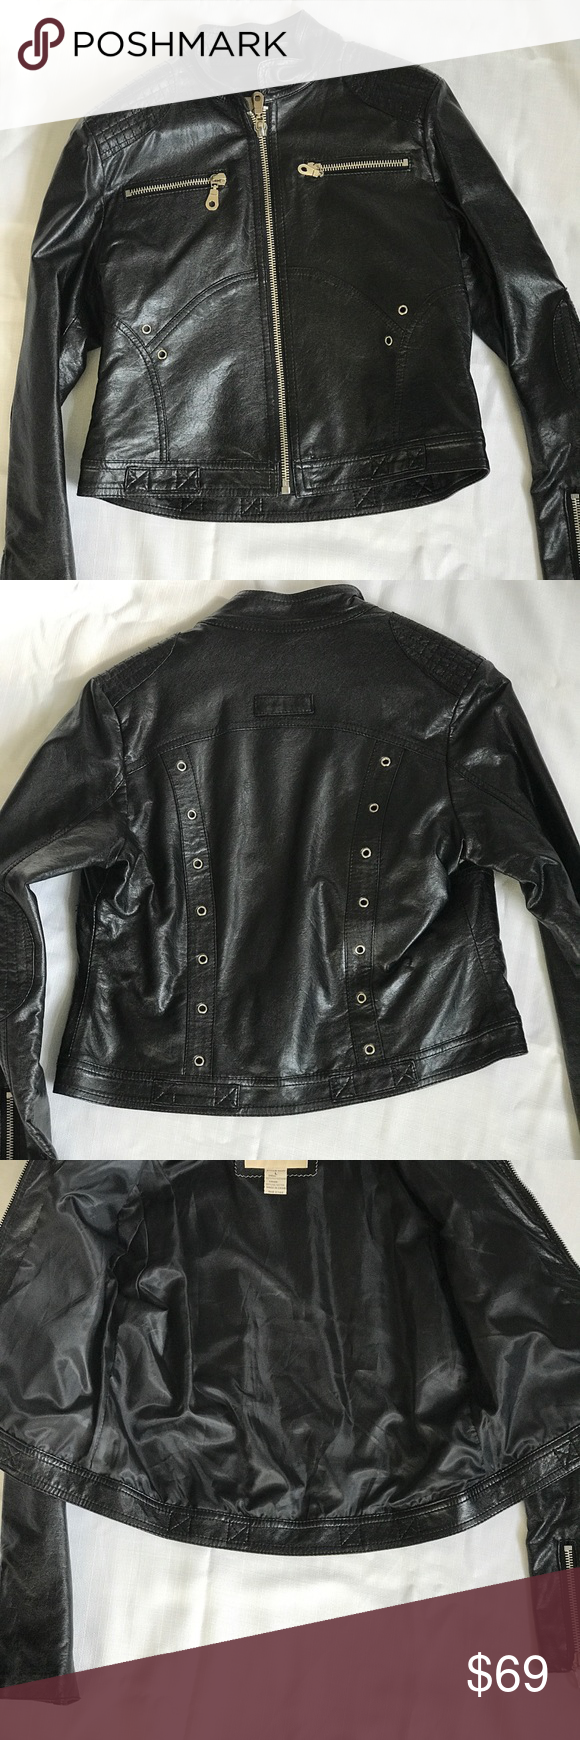 Biker Style Leather Jacket Faux leather, this jacket has